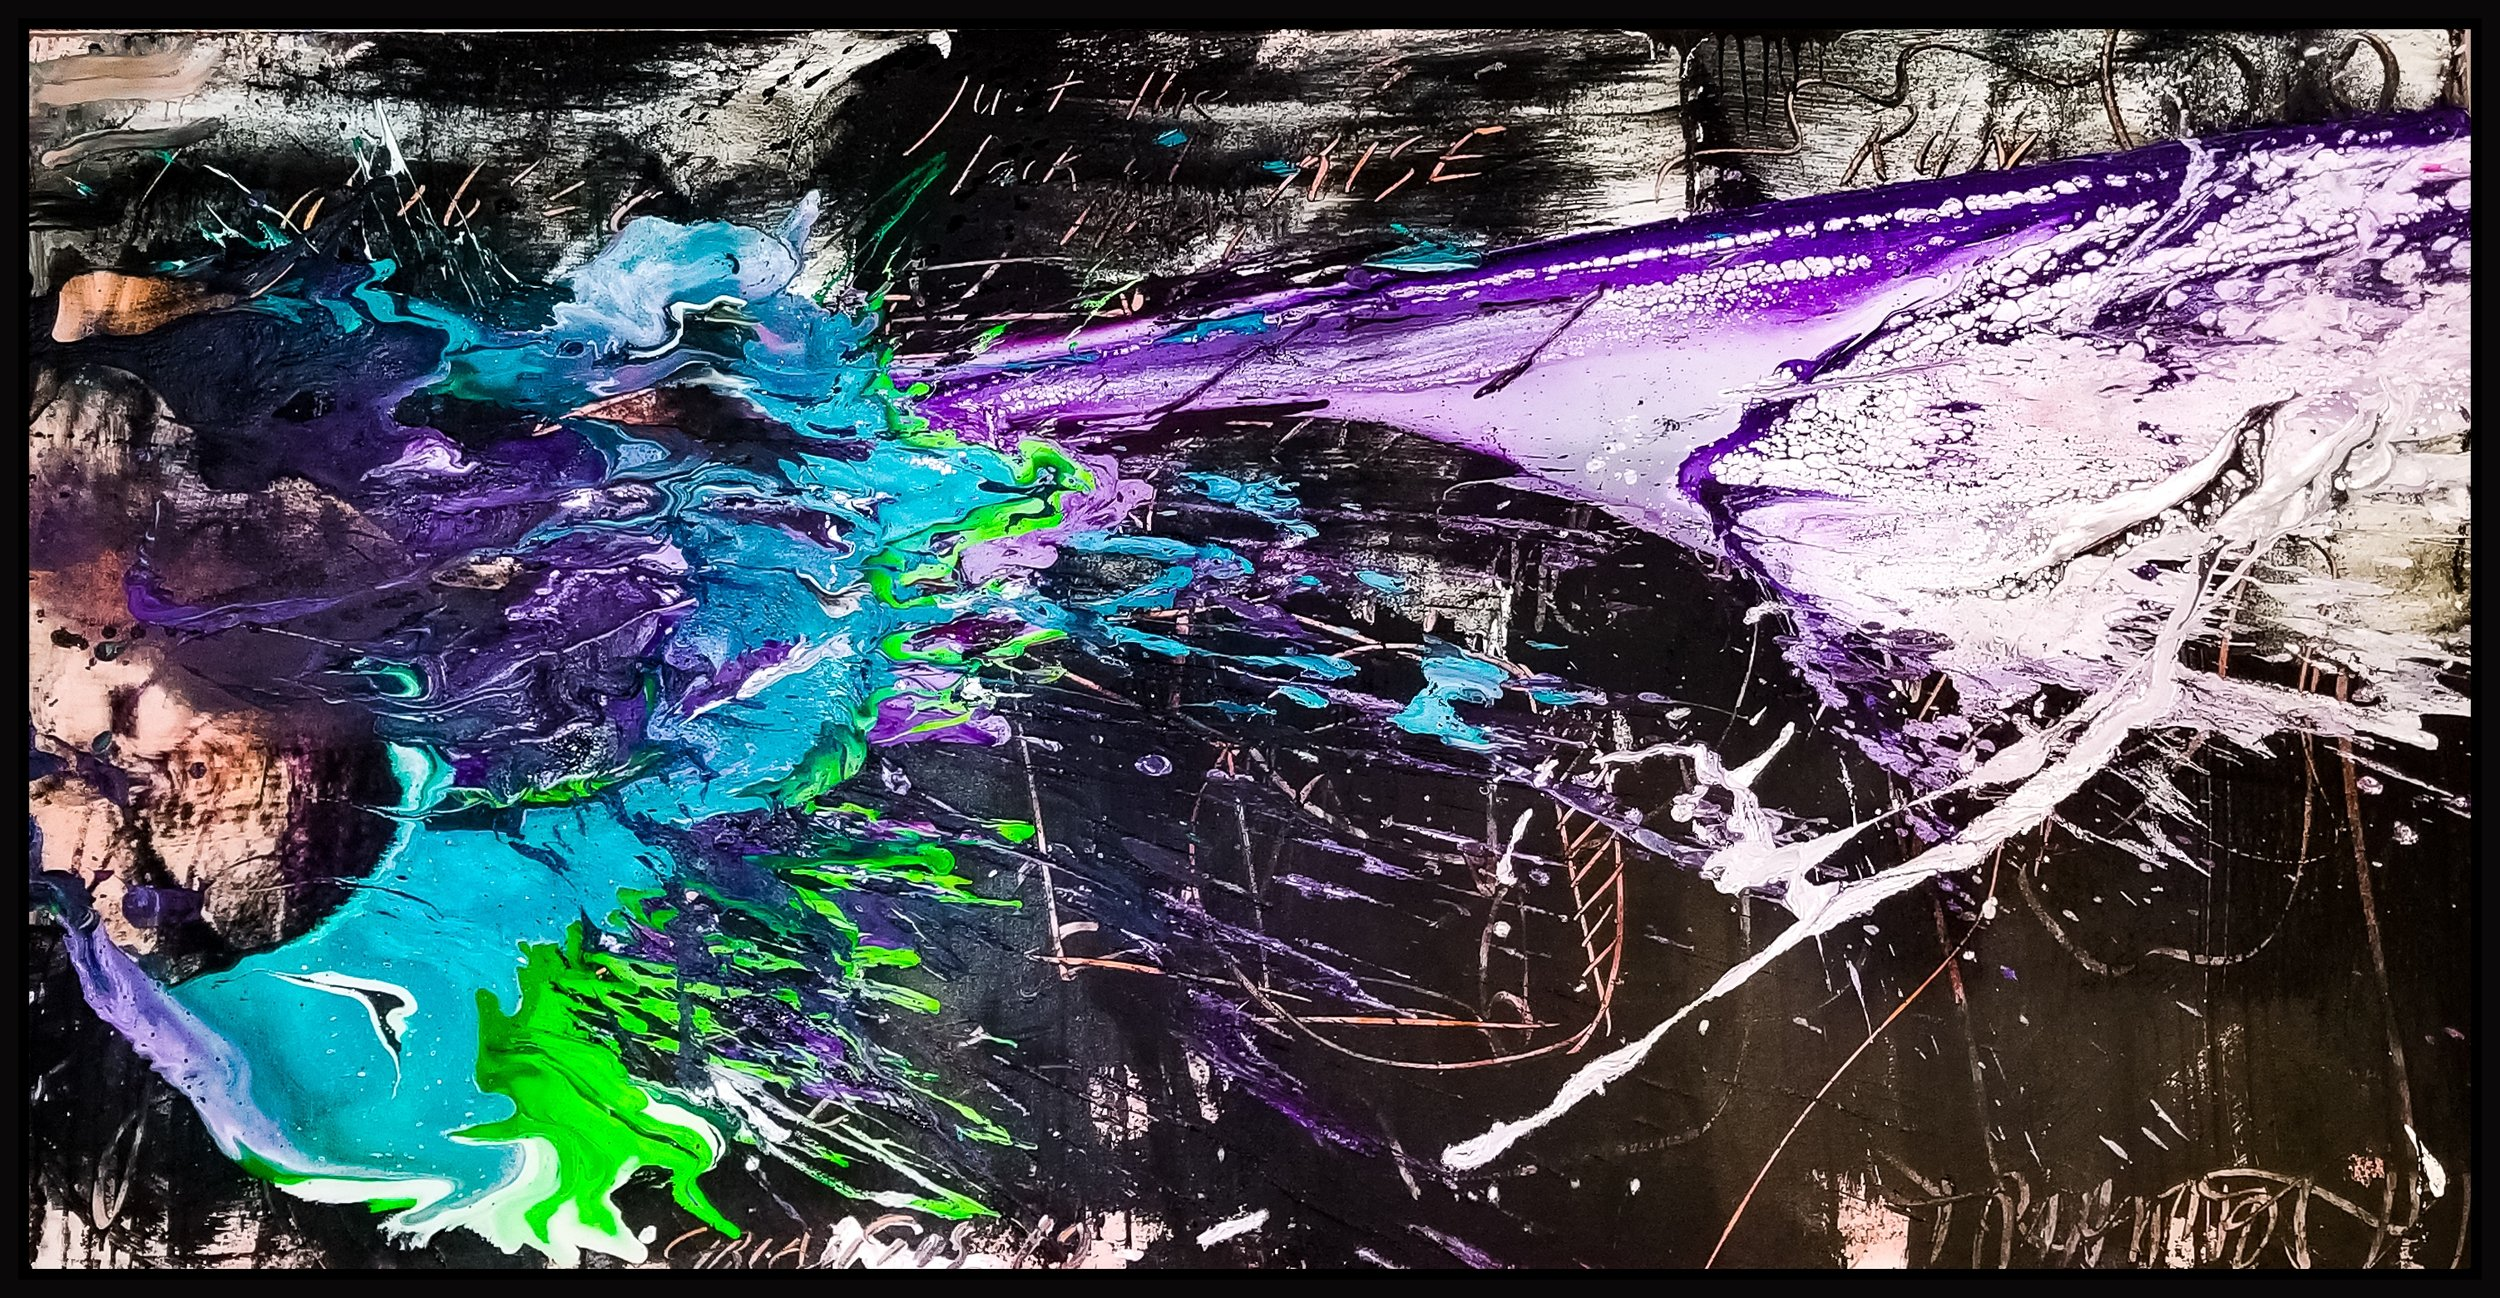 "Splash of Color 2 #144, 2019, acrylic on canvas, 36"" x 72"" (91.4 x 183 cm)"